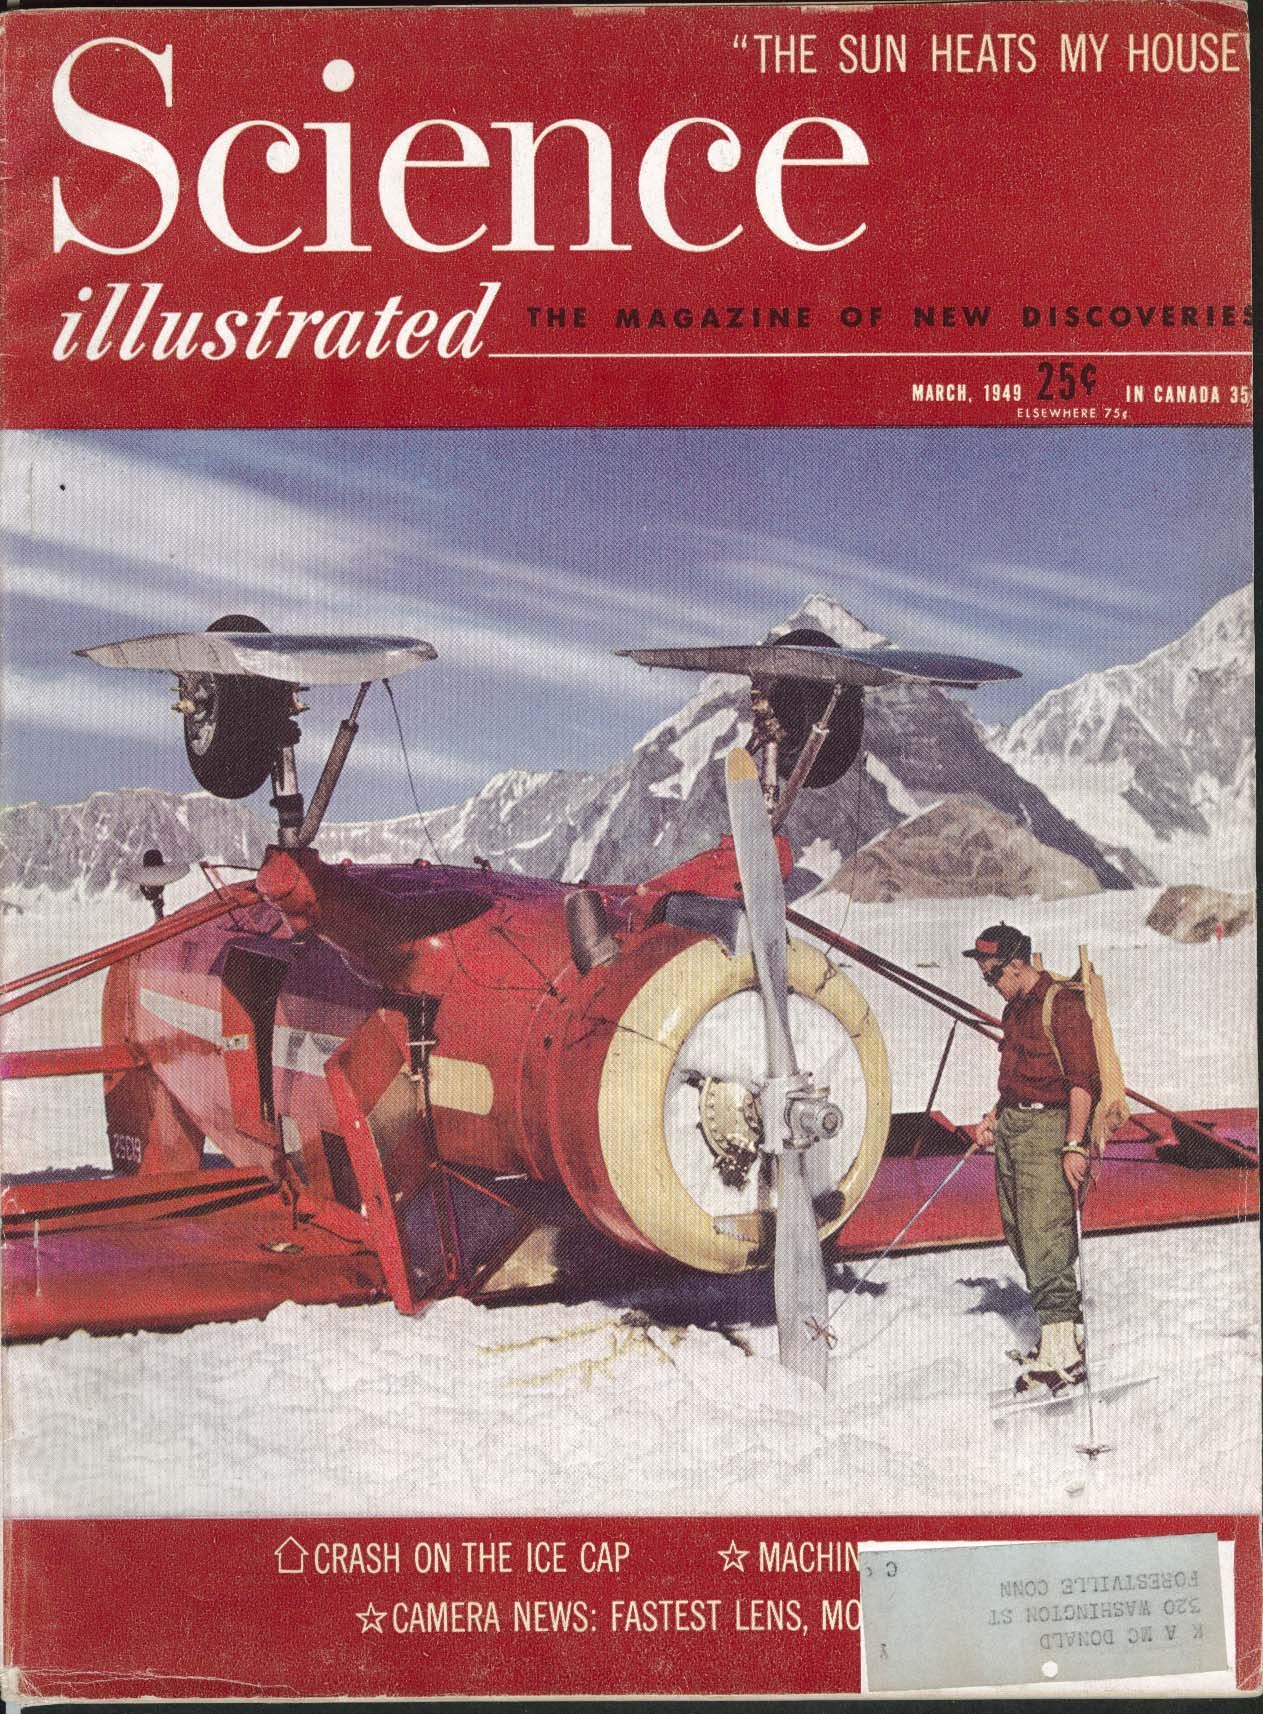 SCIENCE ILLUSTRATED Ice Cap Crash Heinz Foods 3 1949